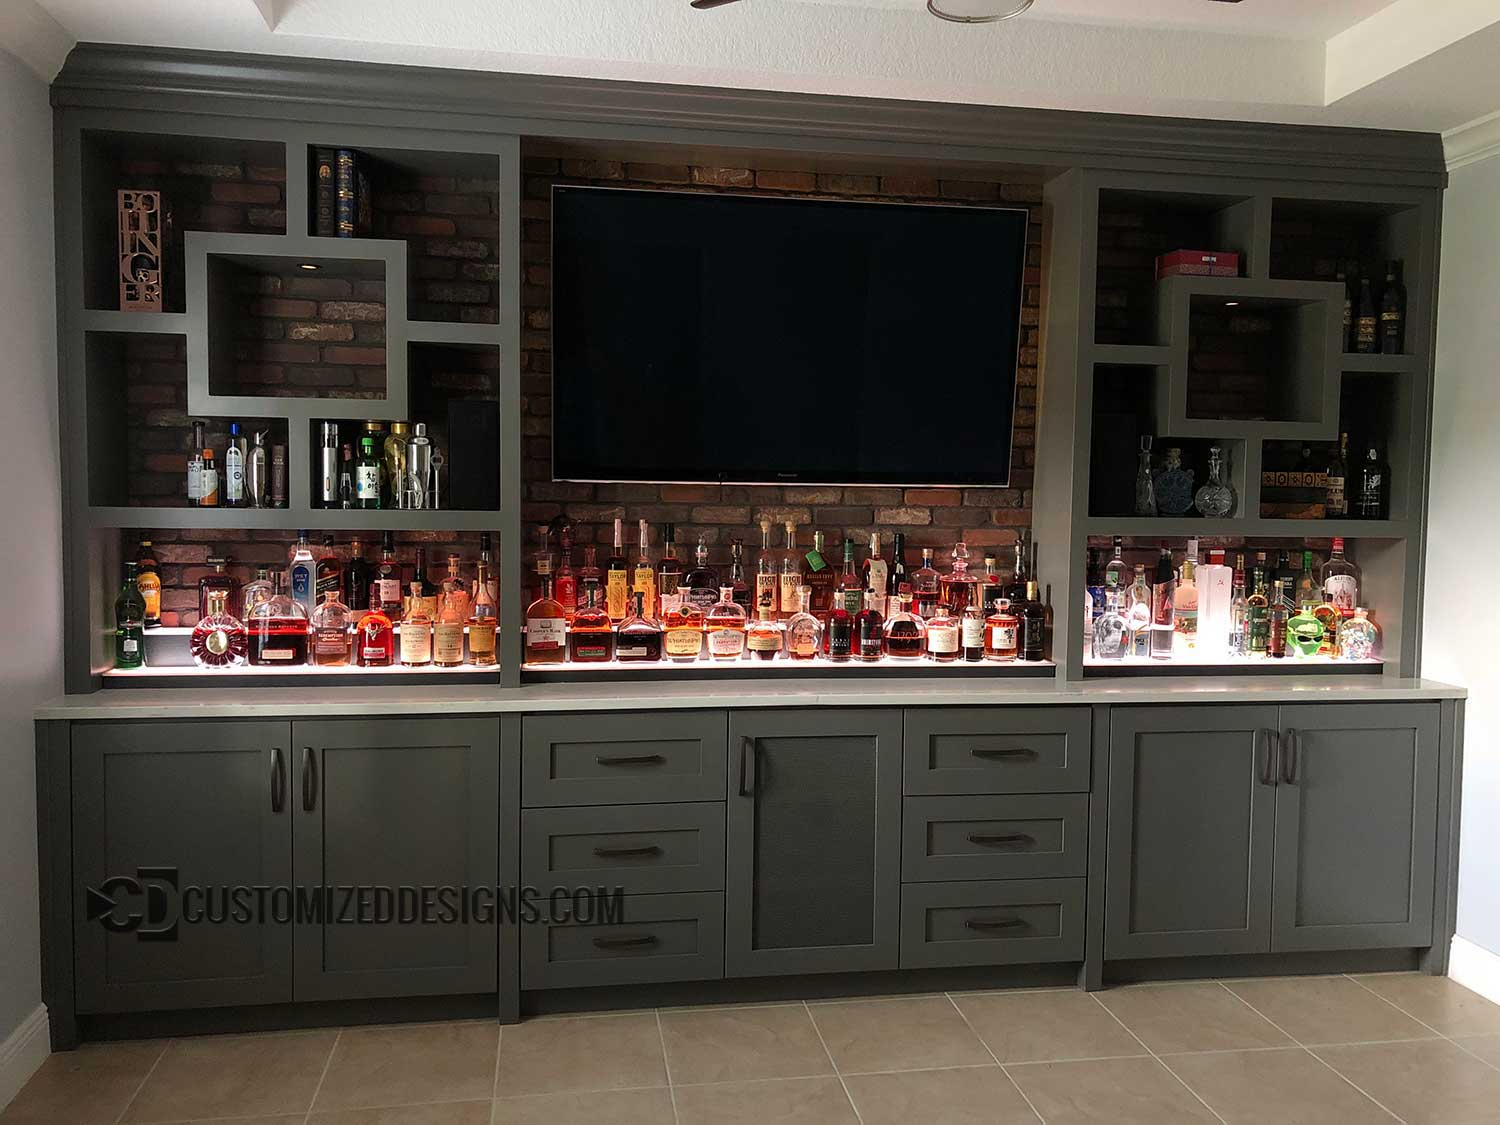 Low Profile Liquor Shelves Customizeddesigns Com